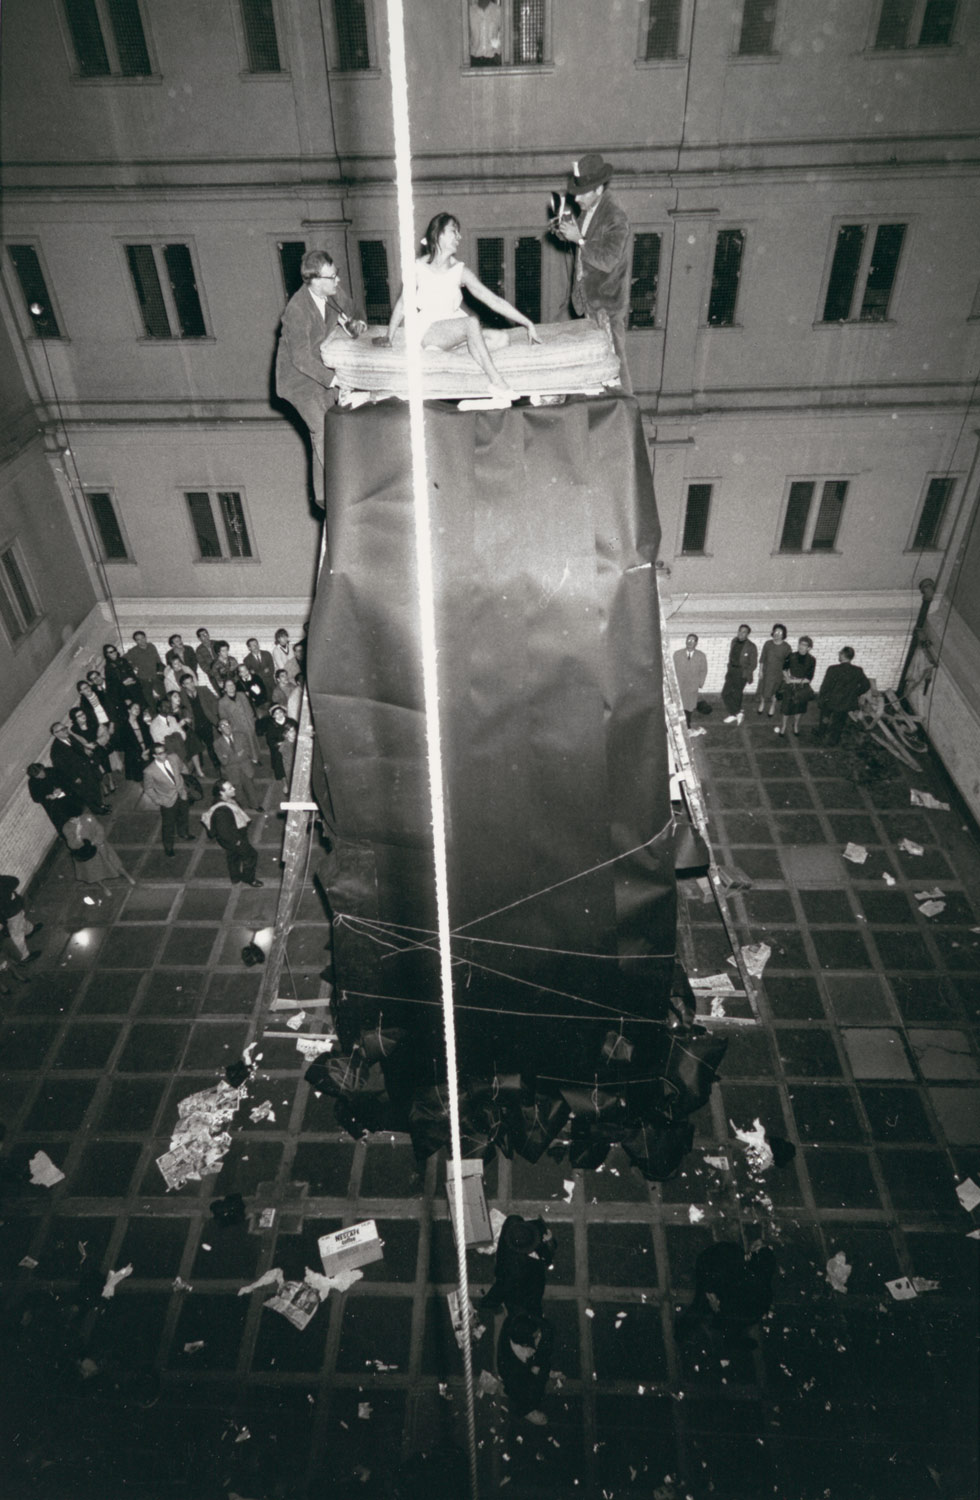 [William Mahin, Lette Eisenhauer, and Charles Simon Atop Giant Mountain Construction in The Courtyard, A Happening by Allan Kaprow, New York City]